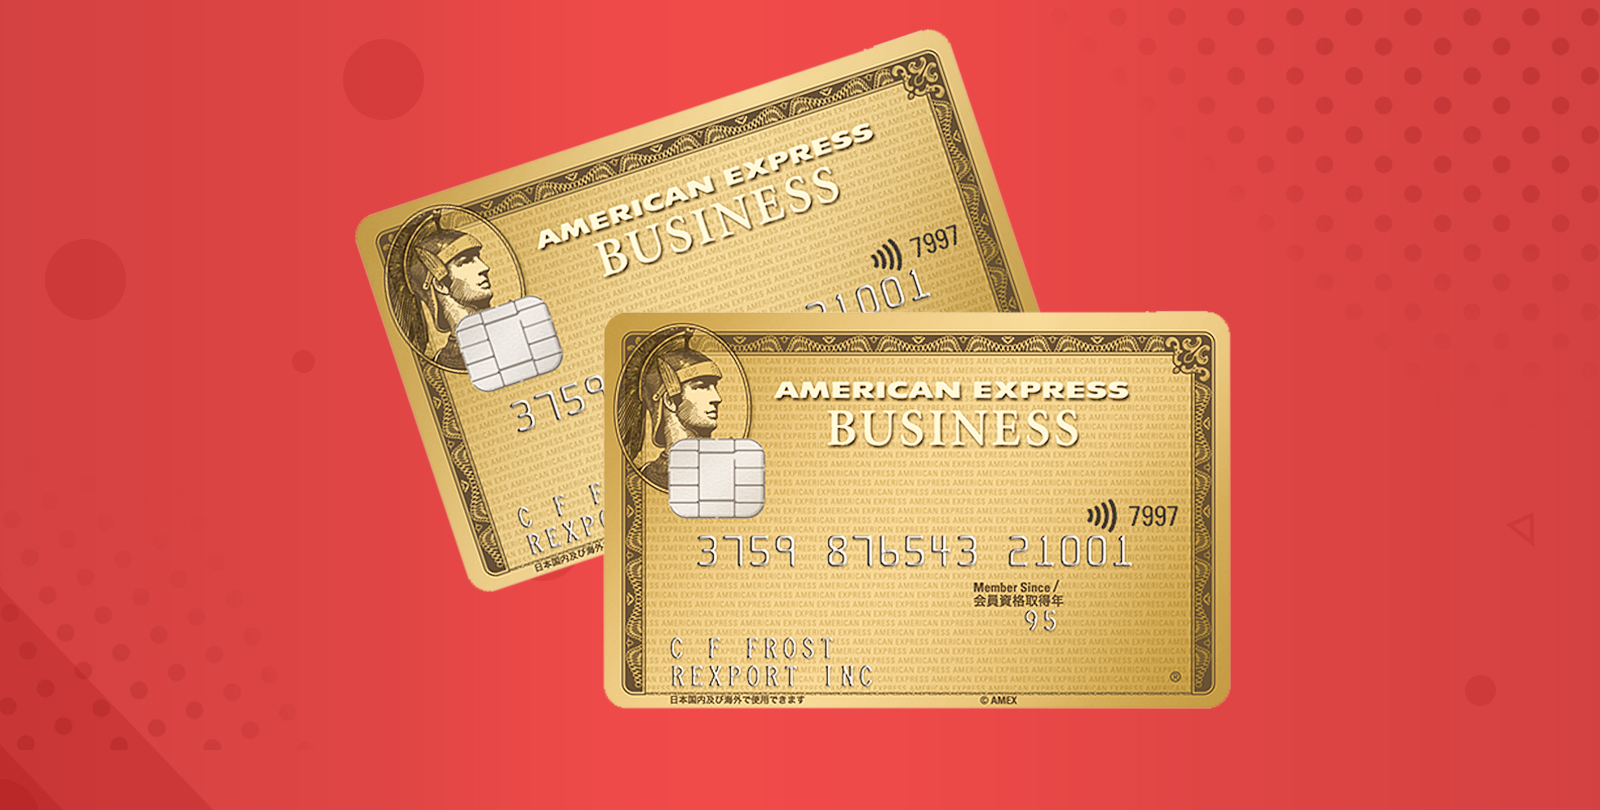 the business gold rewards card from american express open top10 credit cards - Business Gold Rewards Card